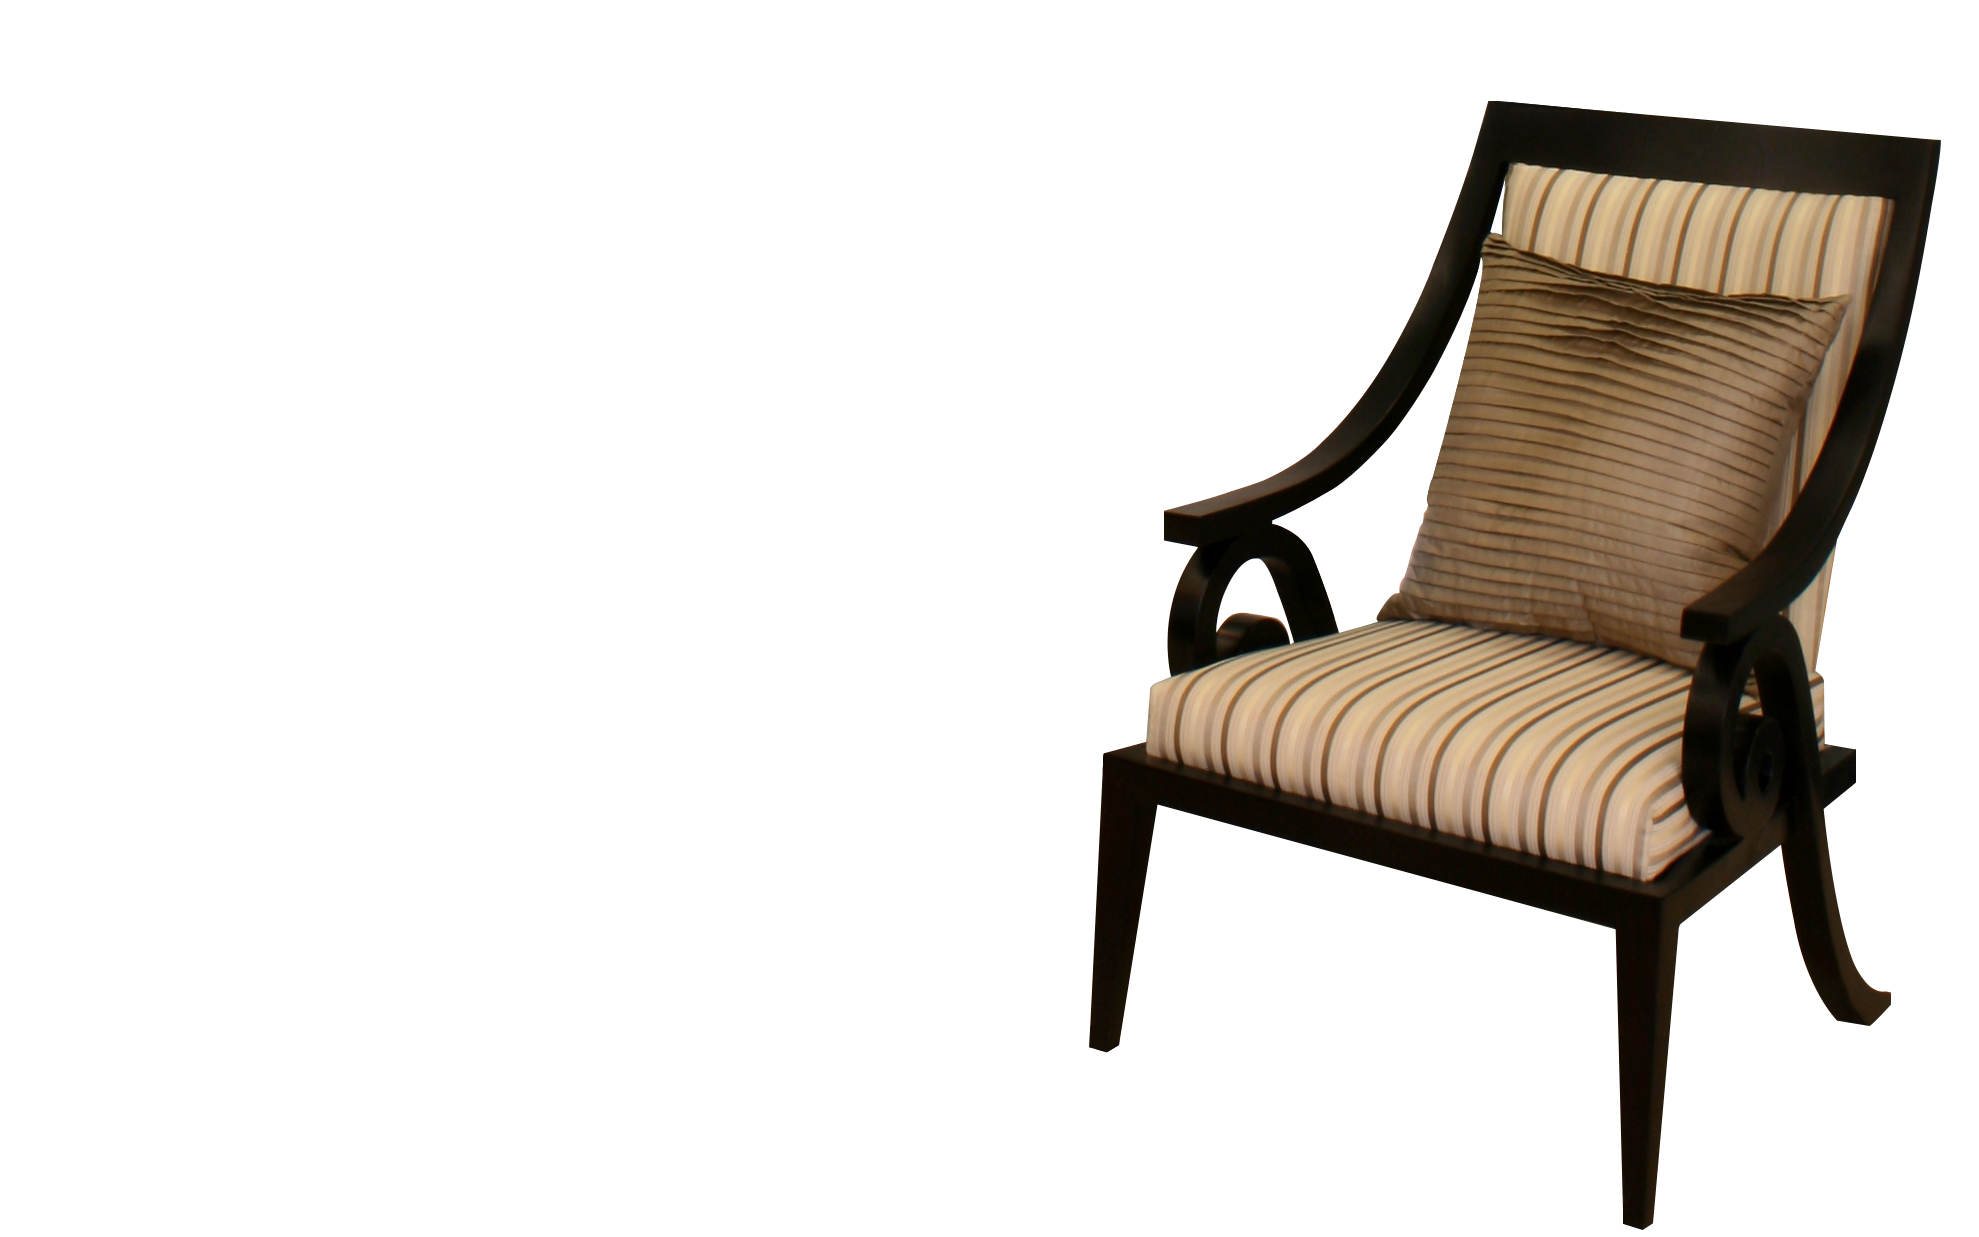 Furniture Picture PNG Image